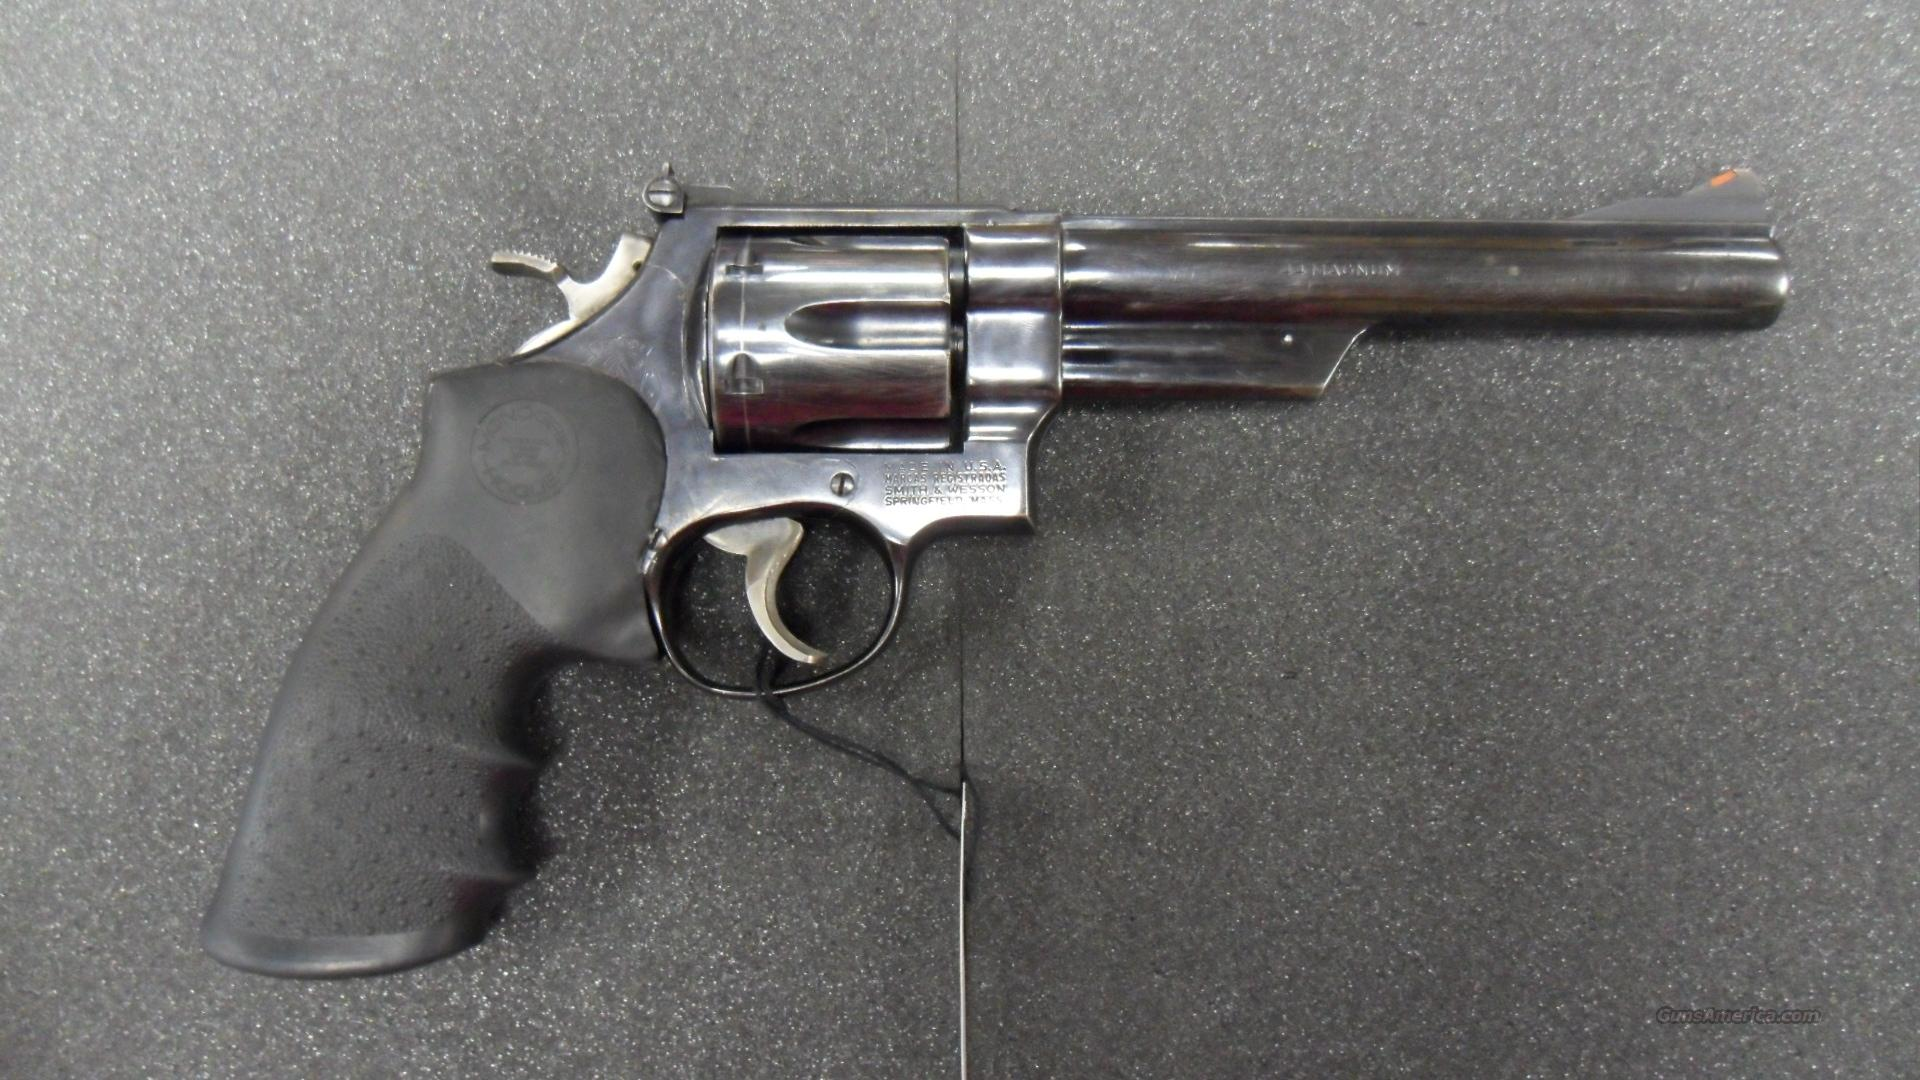 Smith & Wesson 29-2, 44mag.  Guns > Pistols > Smith & Wesson Revolvers > Full Frame Revolver